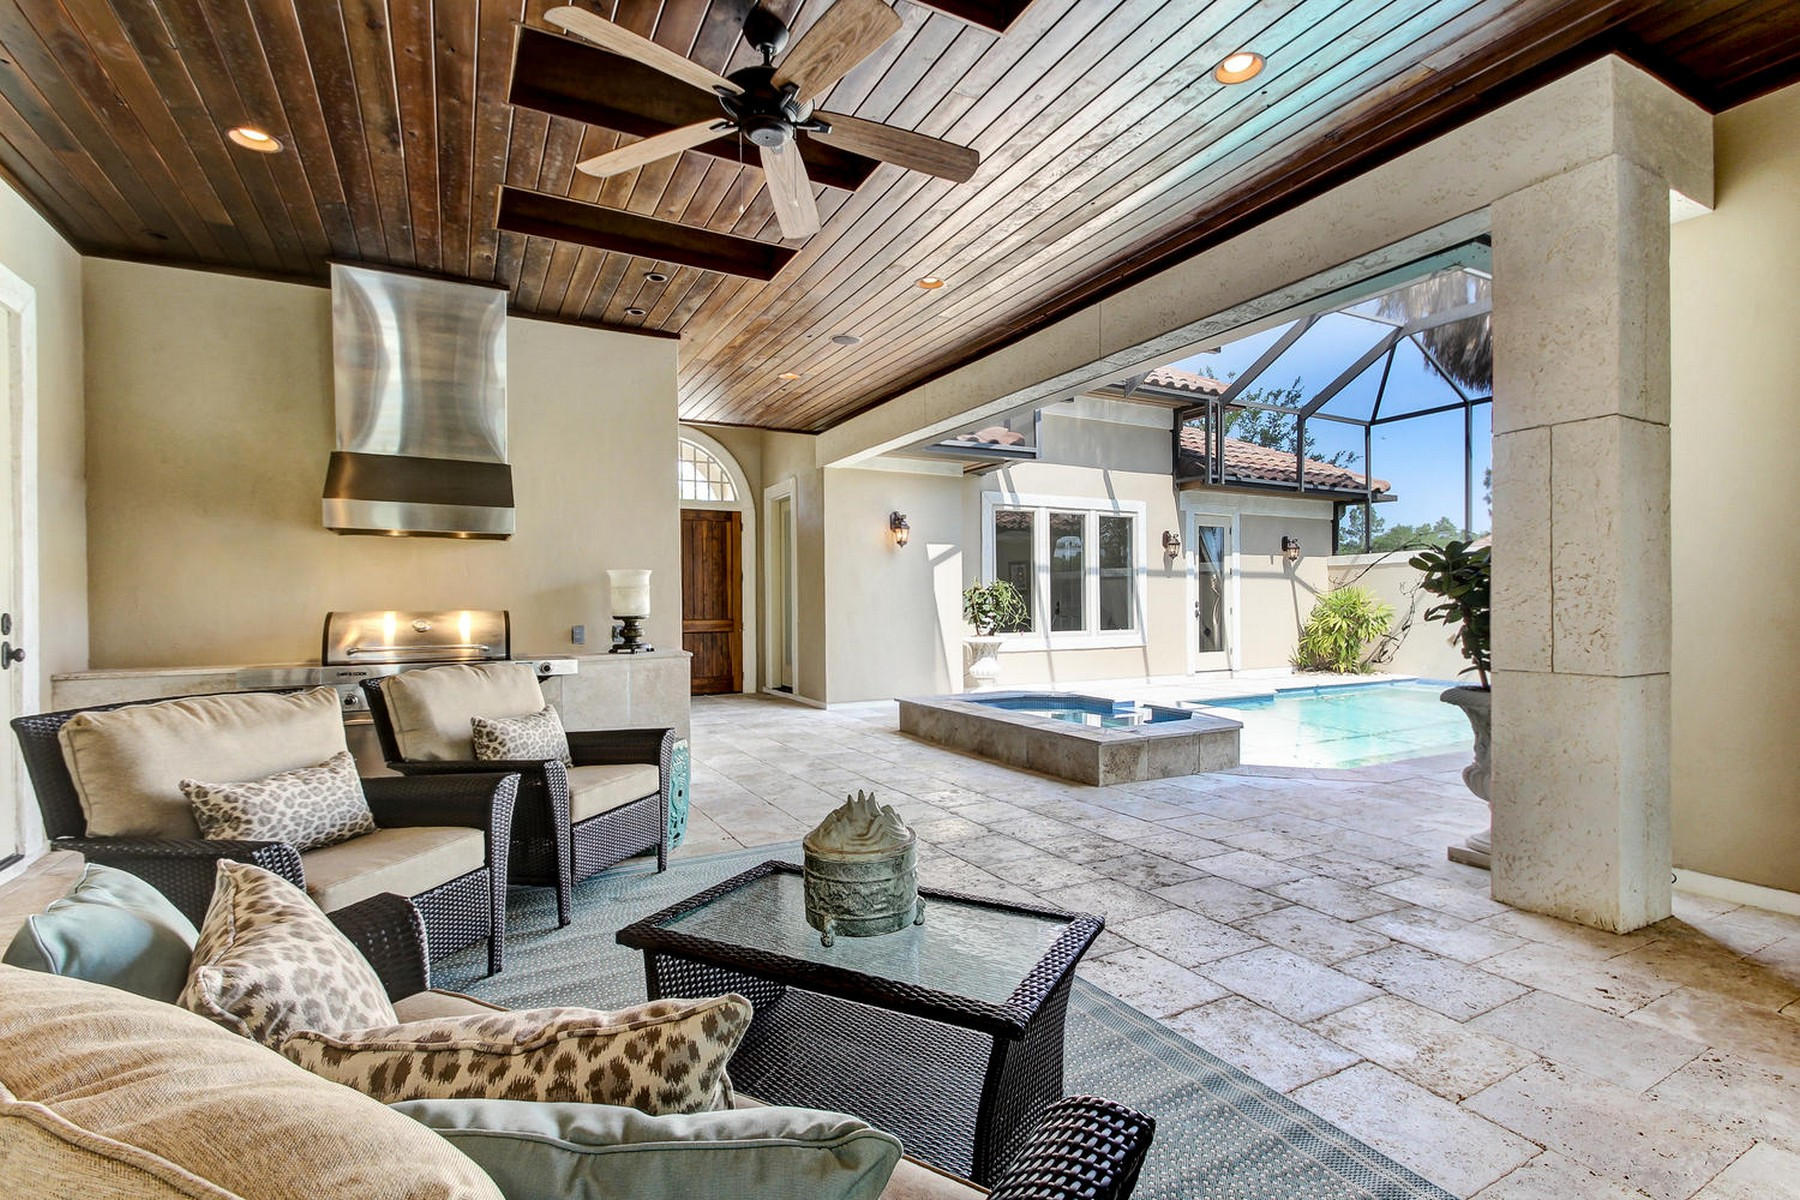 Single Family Home for Sale at Spectacular Pablo Creek Residence 5250 Commissioners Drive Jacksonville, Florida 32224 United States